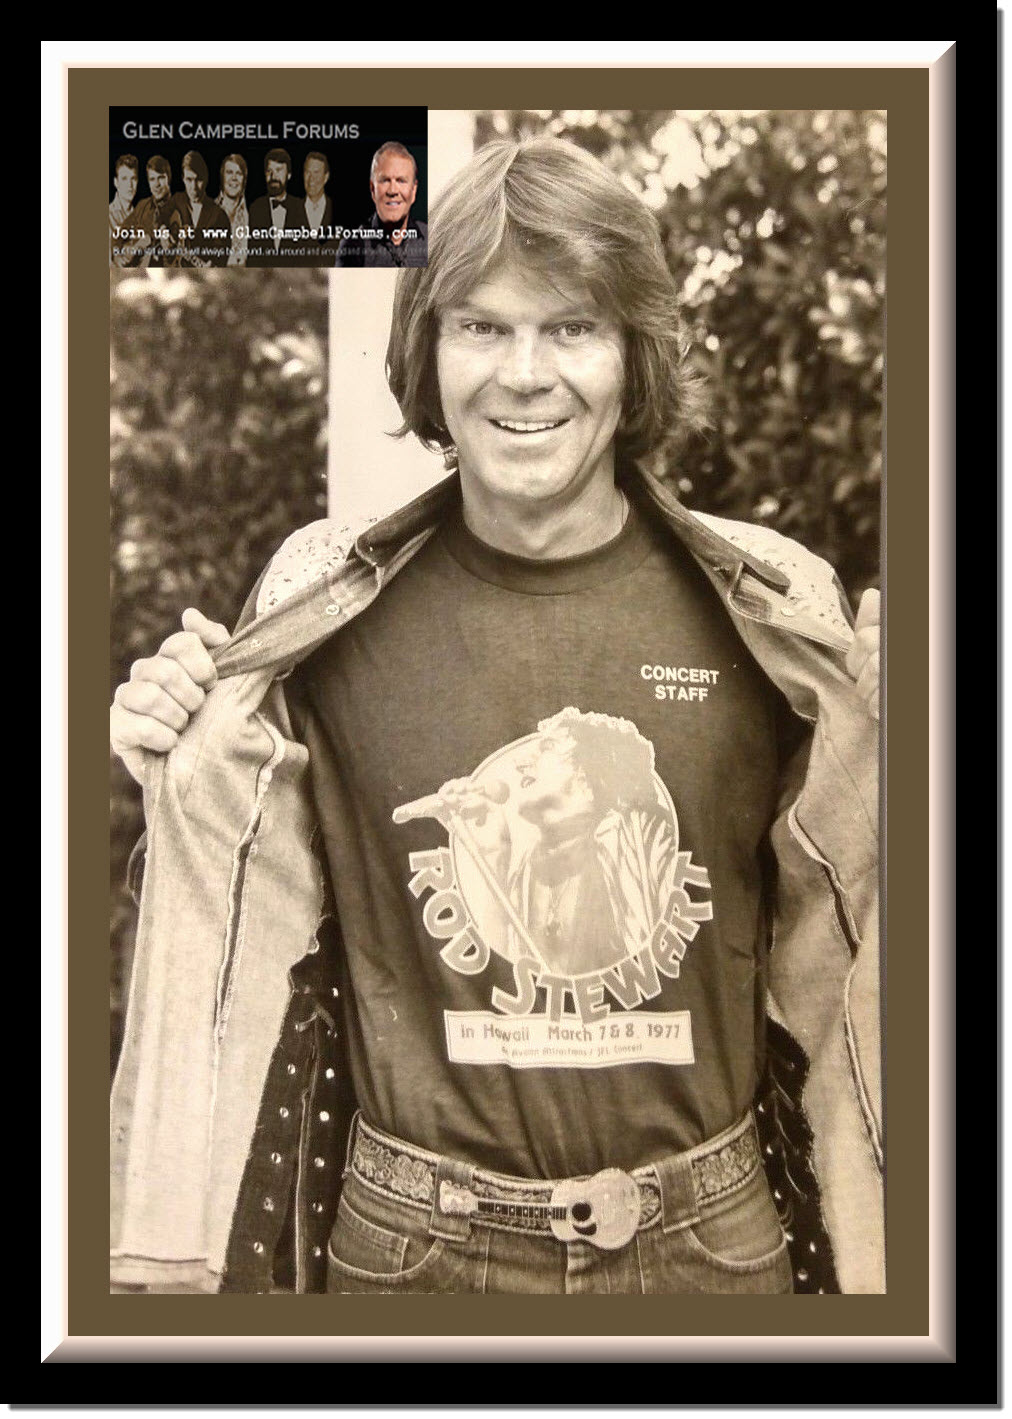 GLEN CAMPBELL SHOWS OFF HIS ROD STEWART CONCERT TEE 1977.jpg